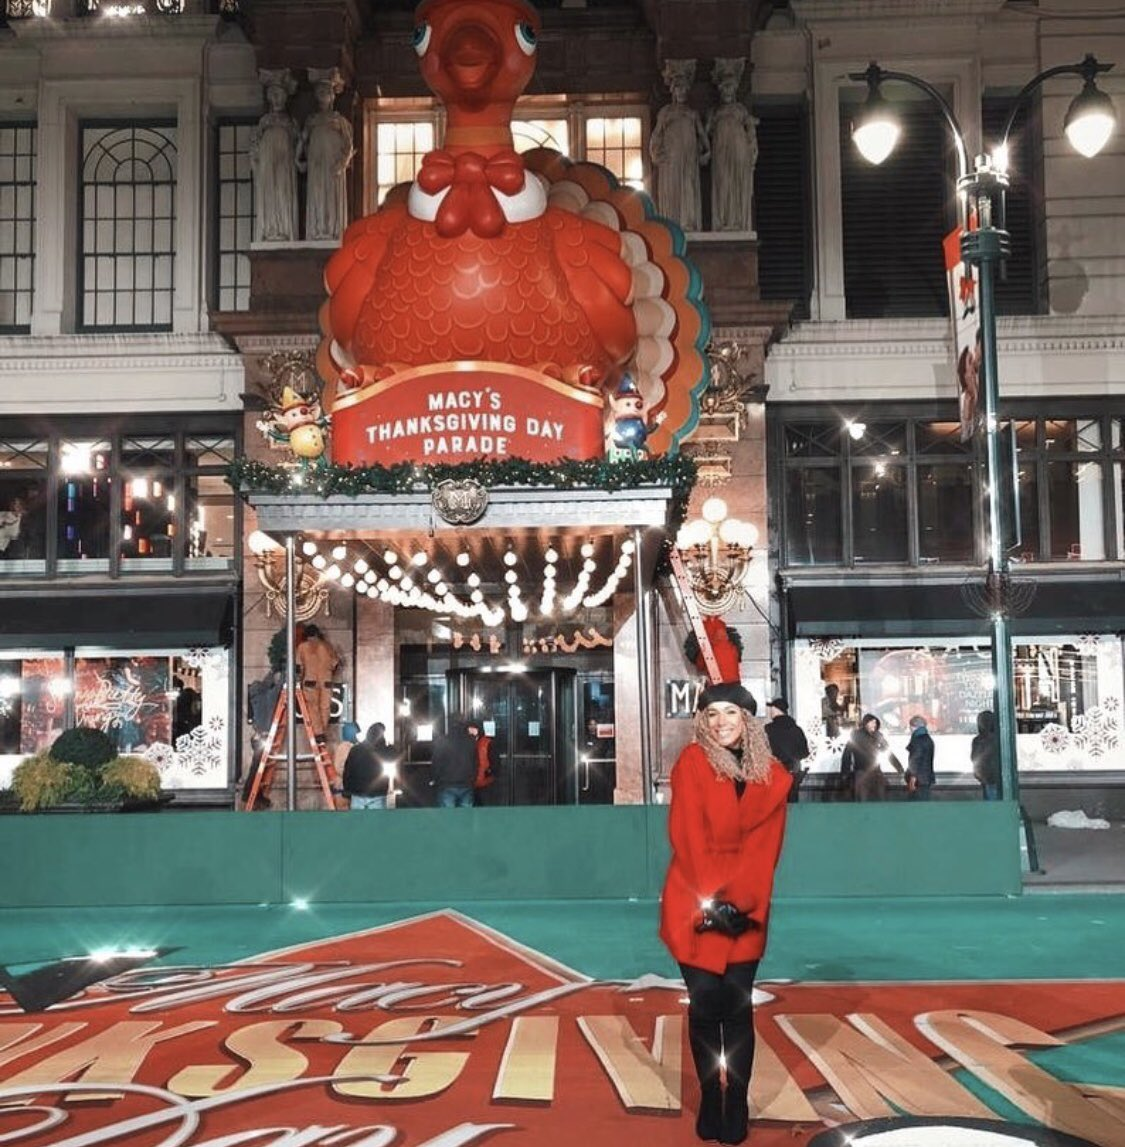 So surreal rehearsing for the iconic #macysthanksgivingdayparade ❤️ excited to perform ✨ https://t.co/nPc3iAufEf